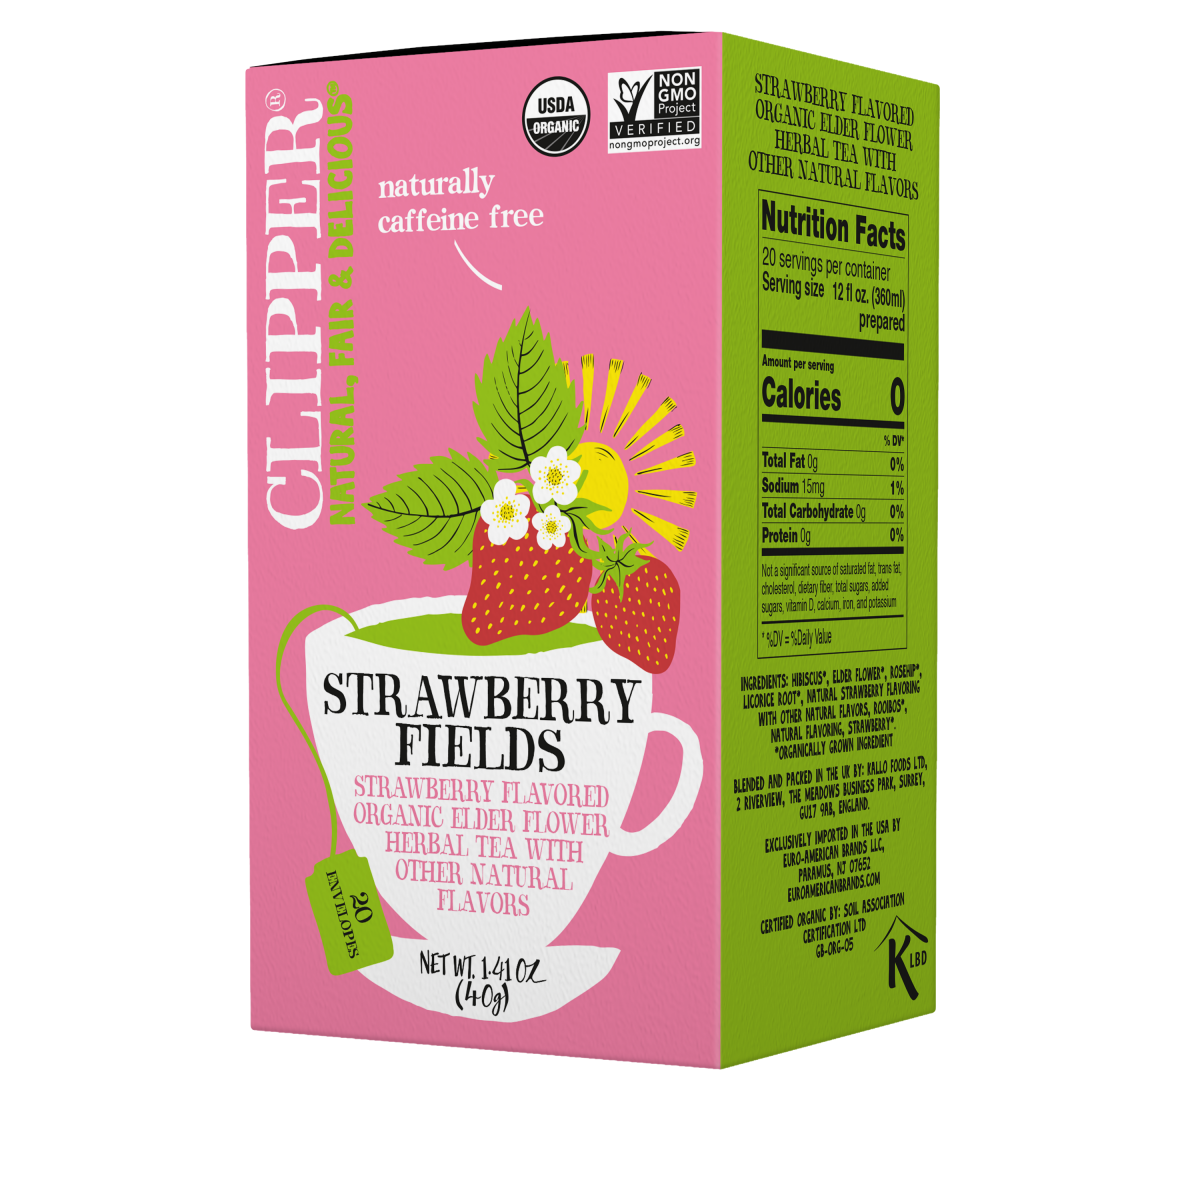 Strawberry Fields organic herbal tea